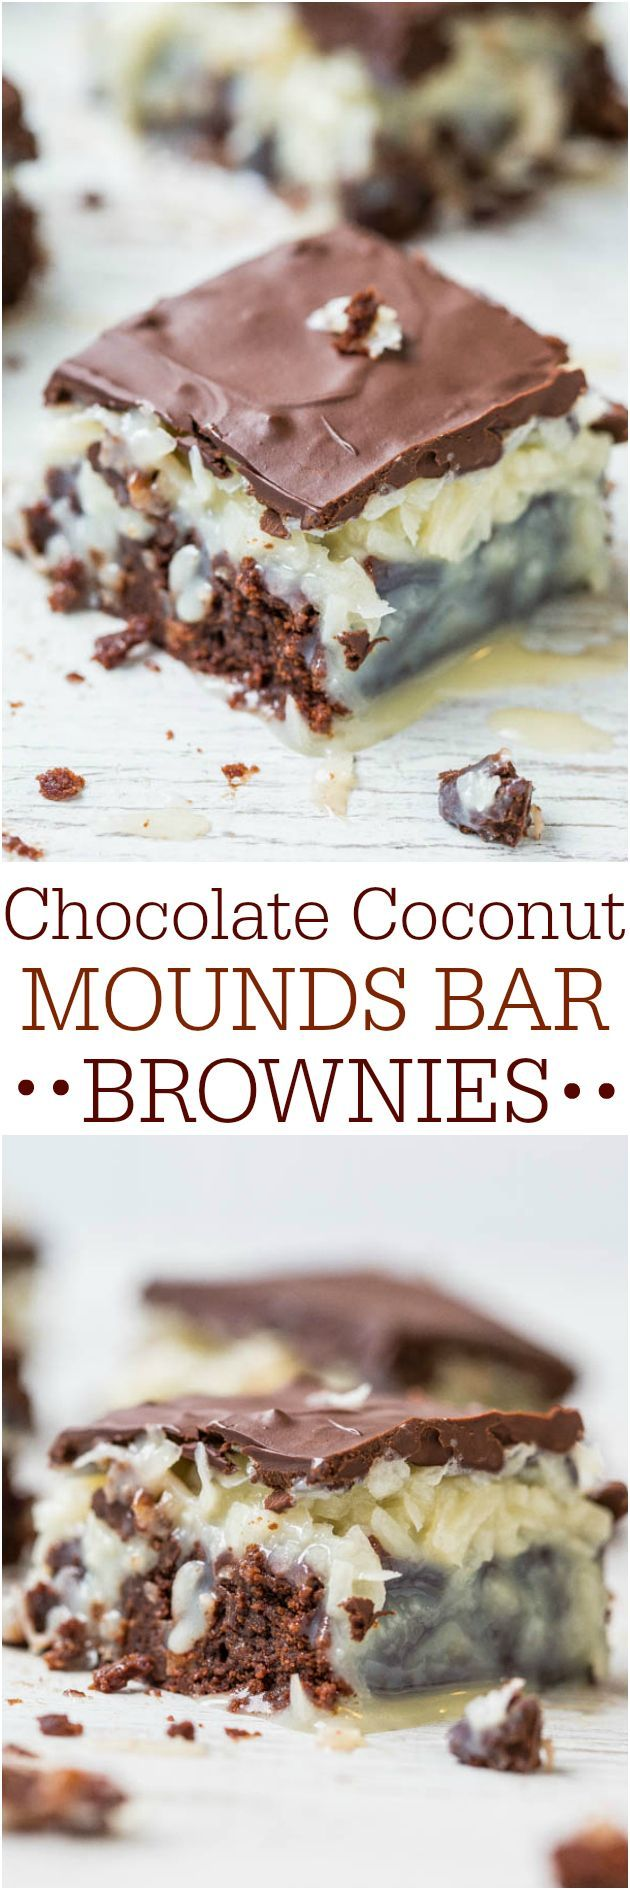 Chocolate Coconut Mounds Bar Brownies - Like eating a Mounds candy bar that's on top of rich, fudgy brownies!! Easy and oh so good!! Perfect for your next party or event!